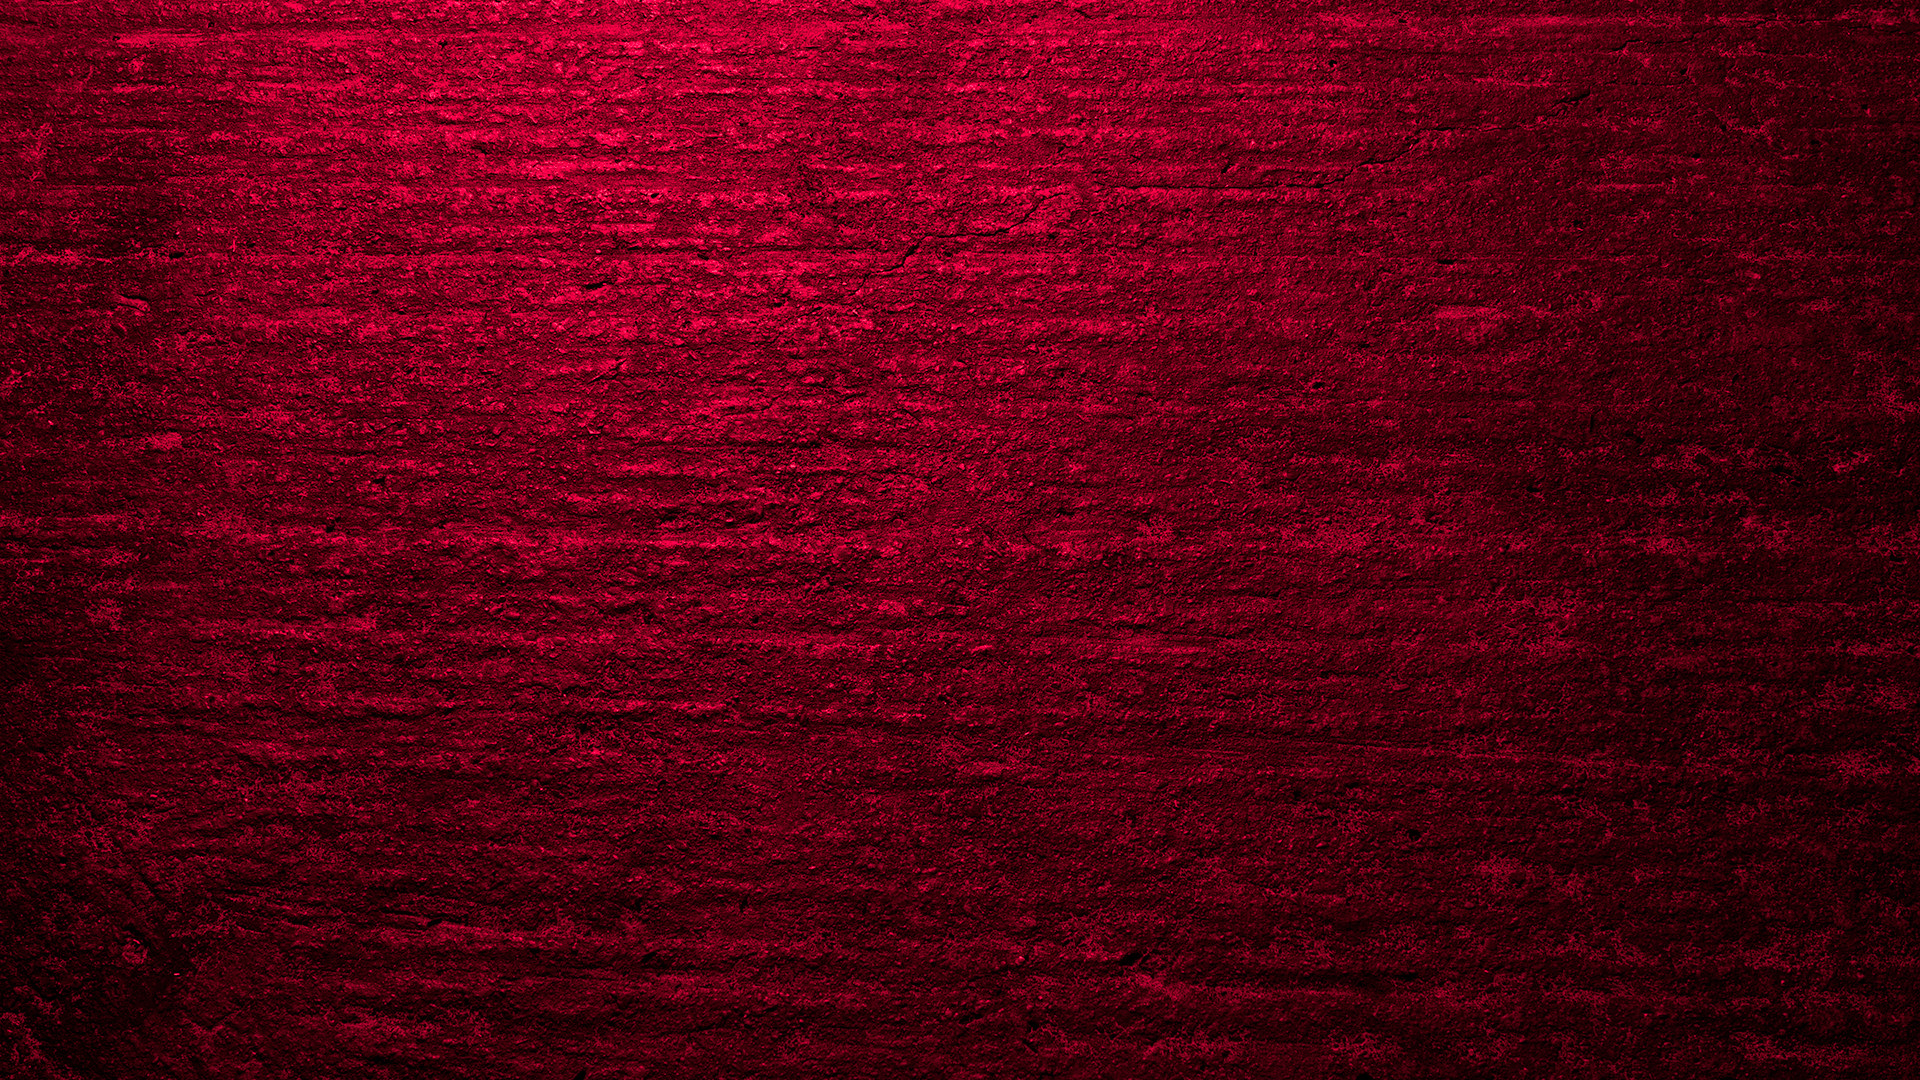 Red Grunge Wallpaper (50+ images)